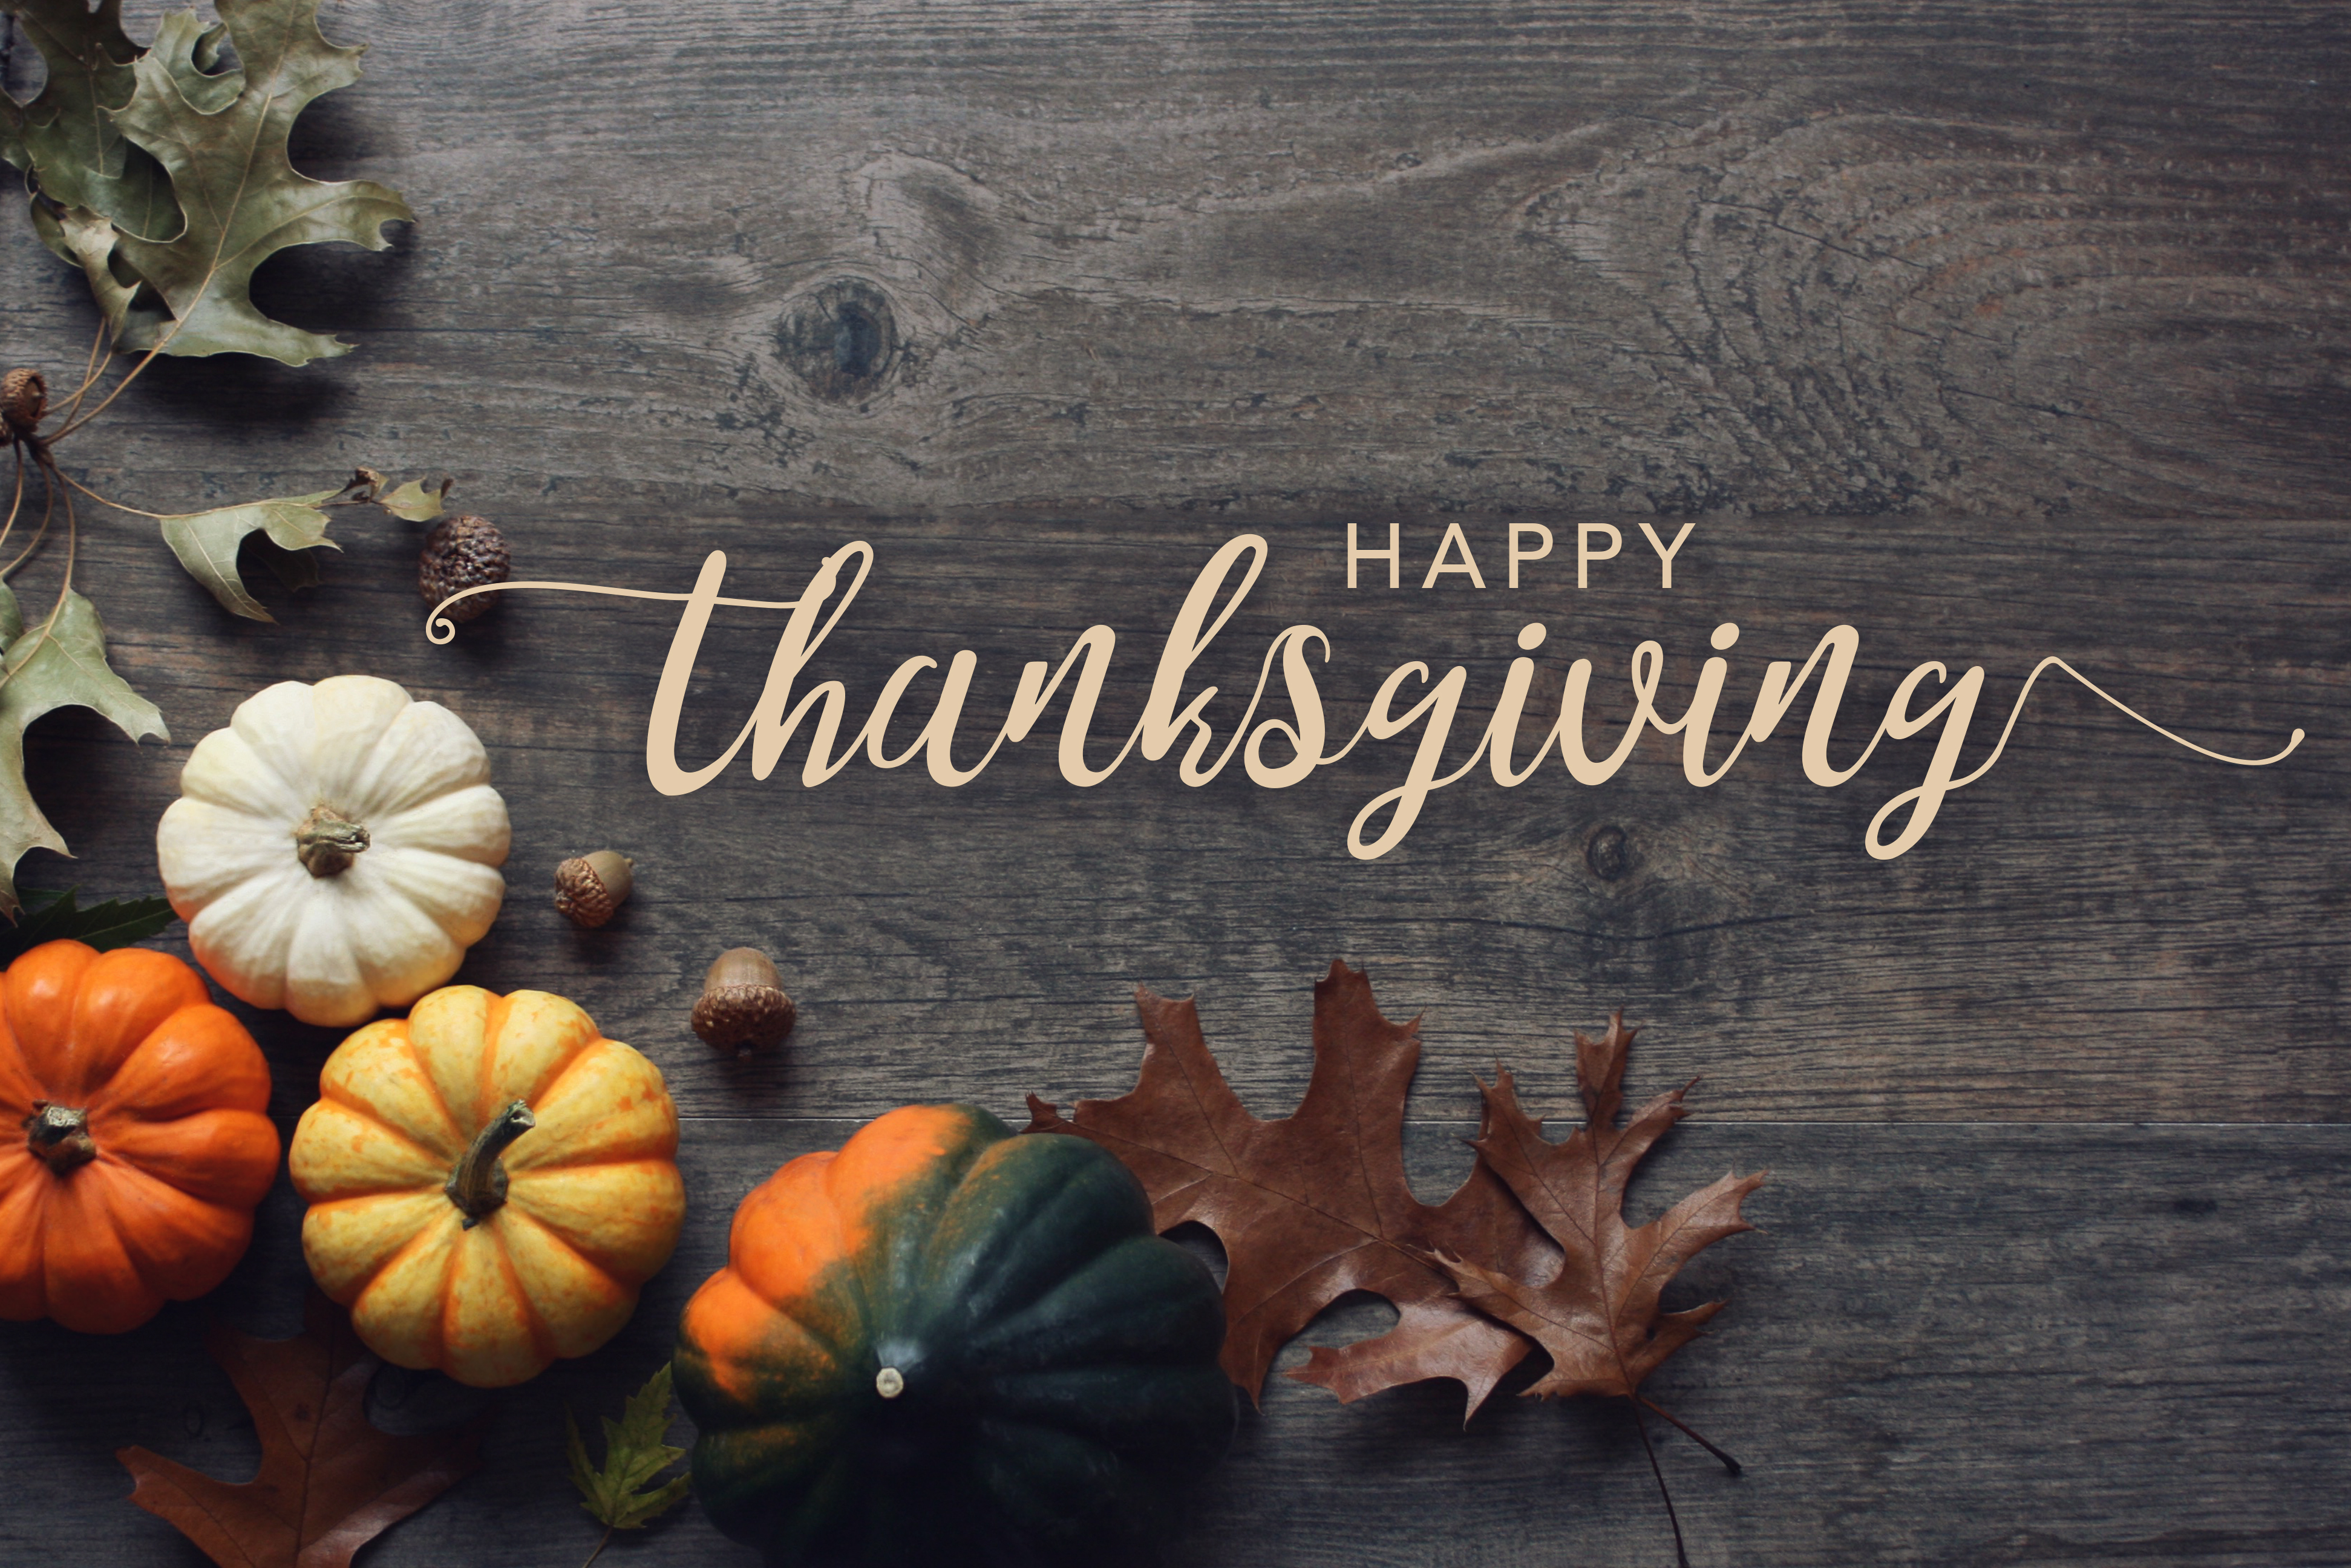 Happy Thanksgiving greeting text with co